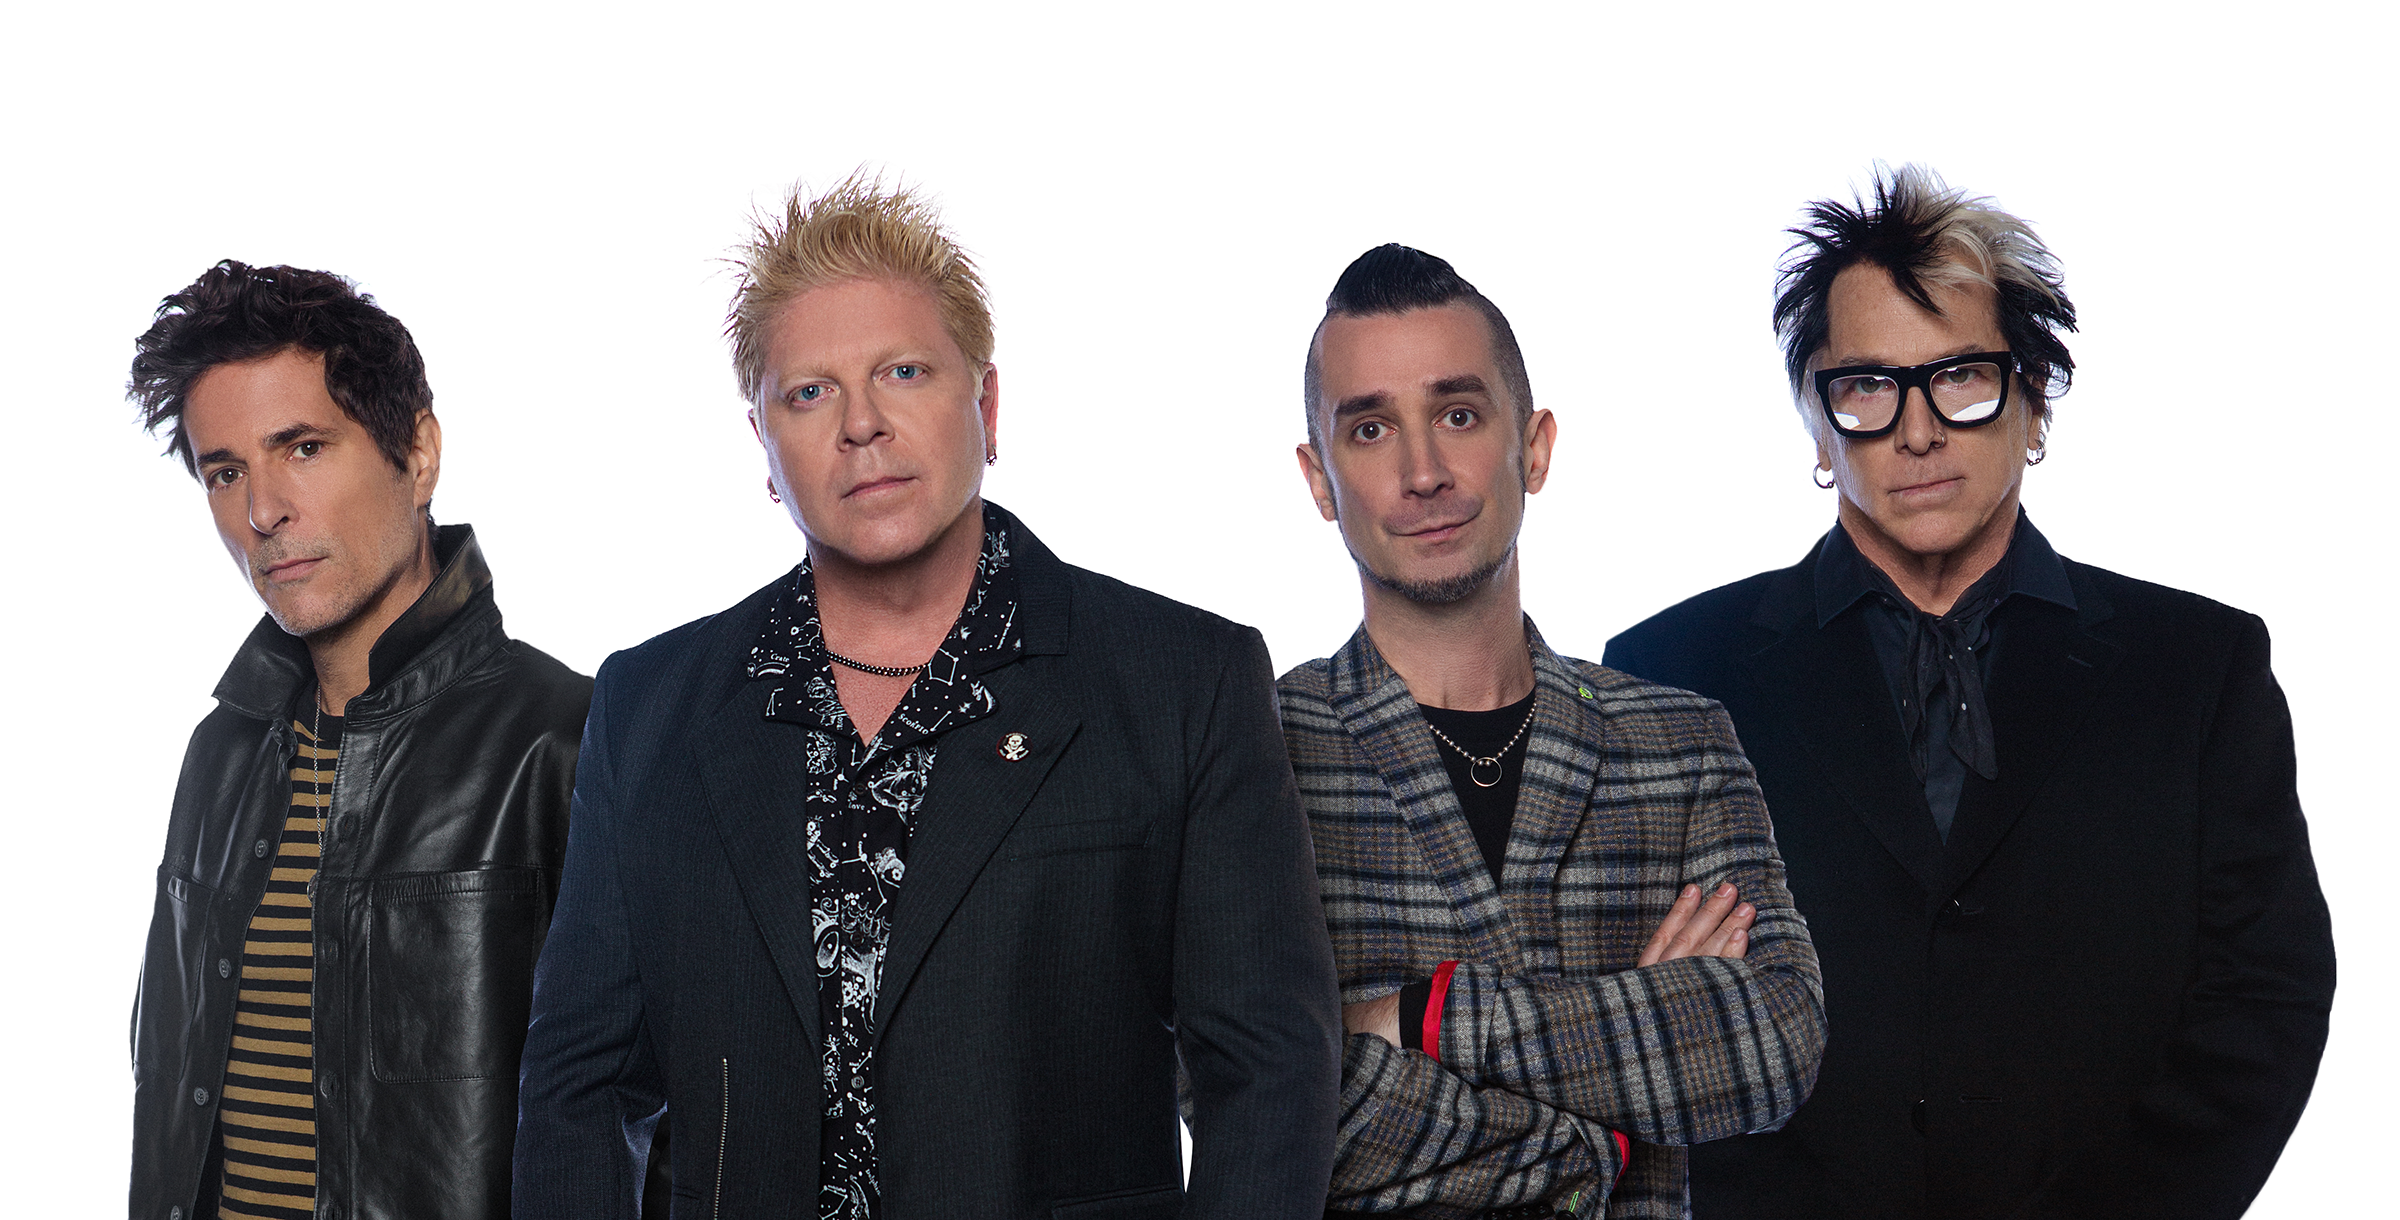 THE OFFSPRING release their video for single 'Let The Bad Times Roll' 1